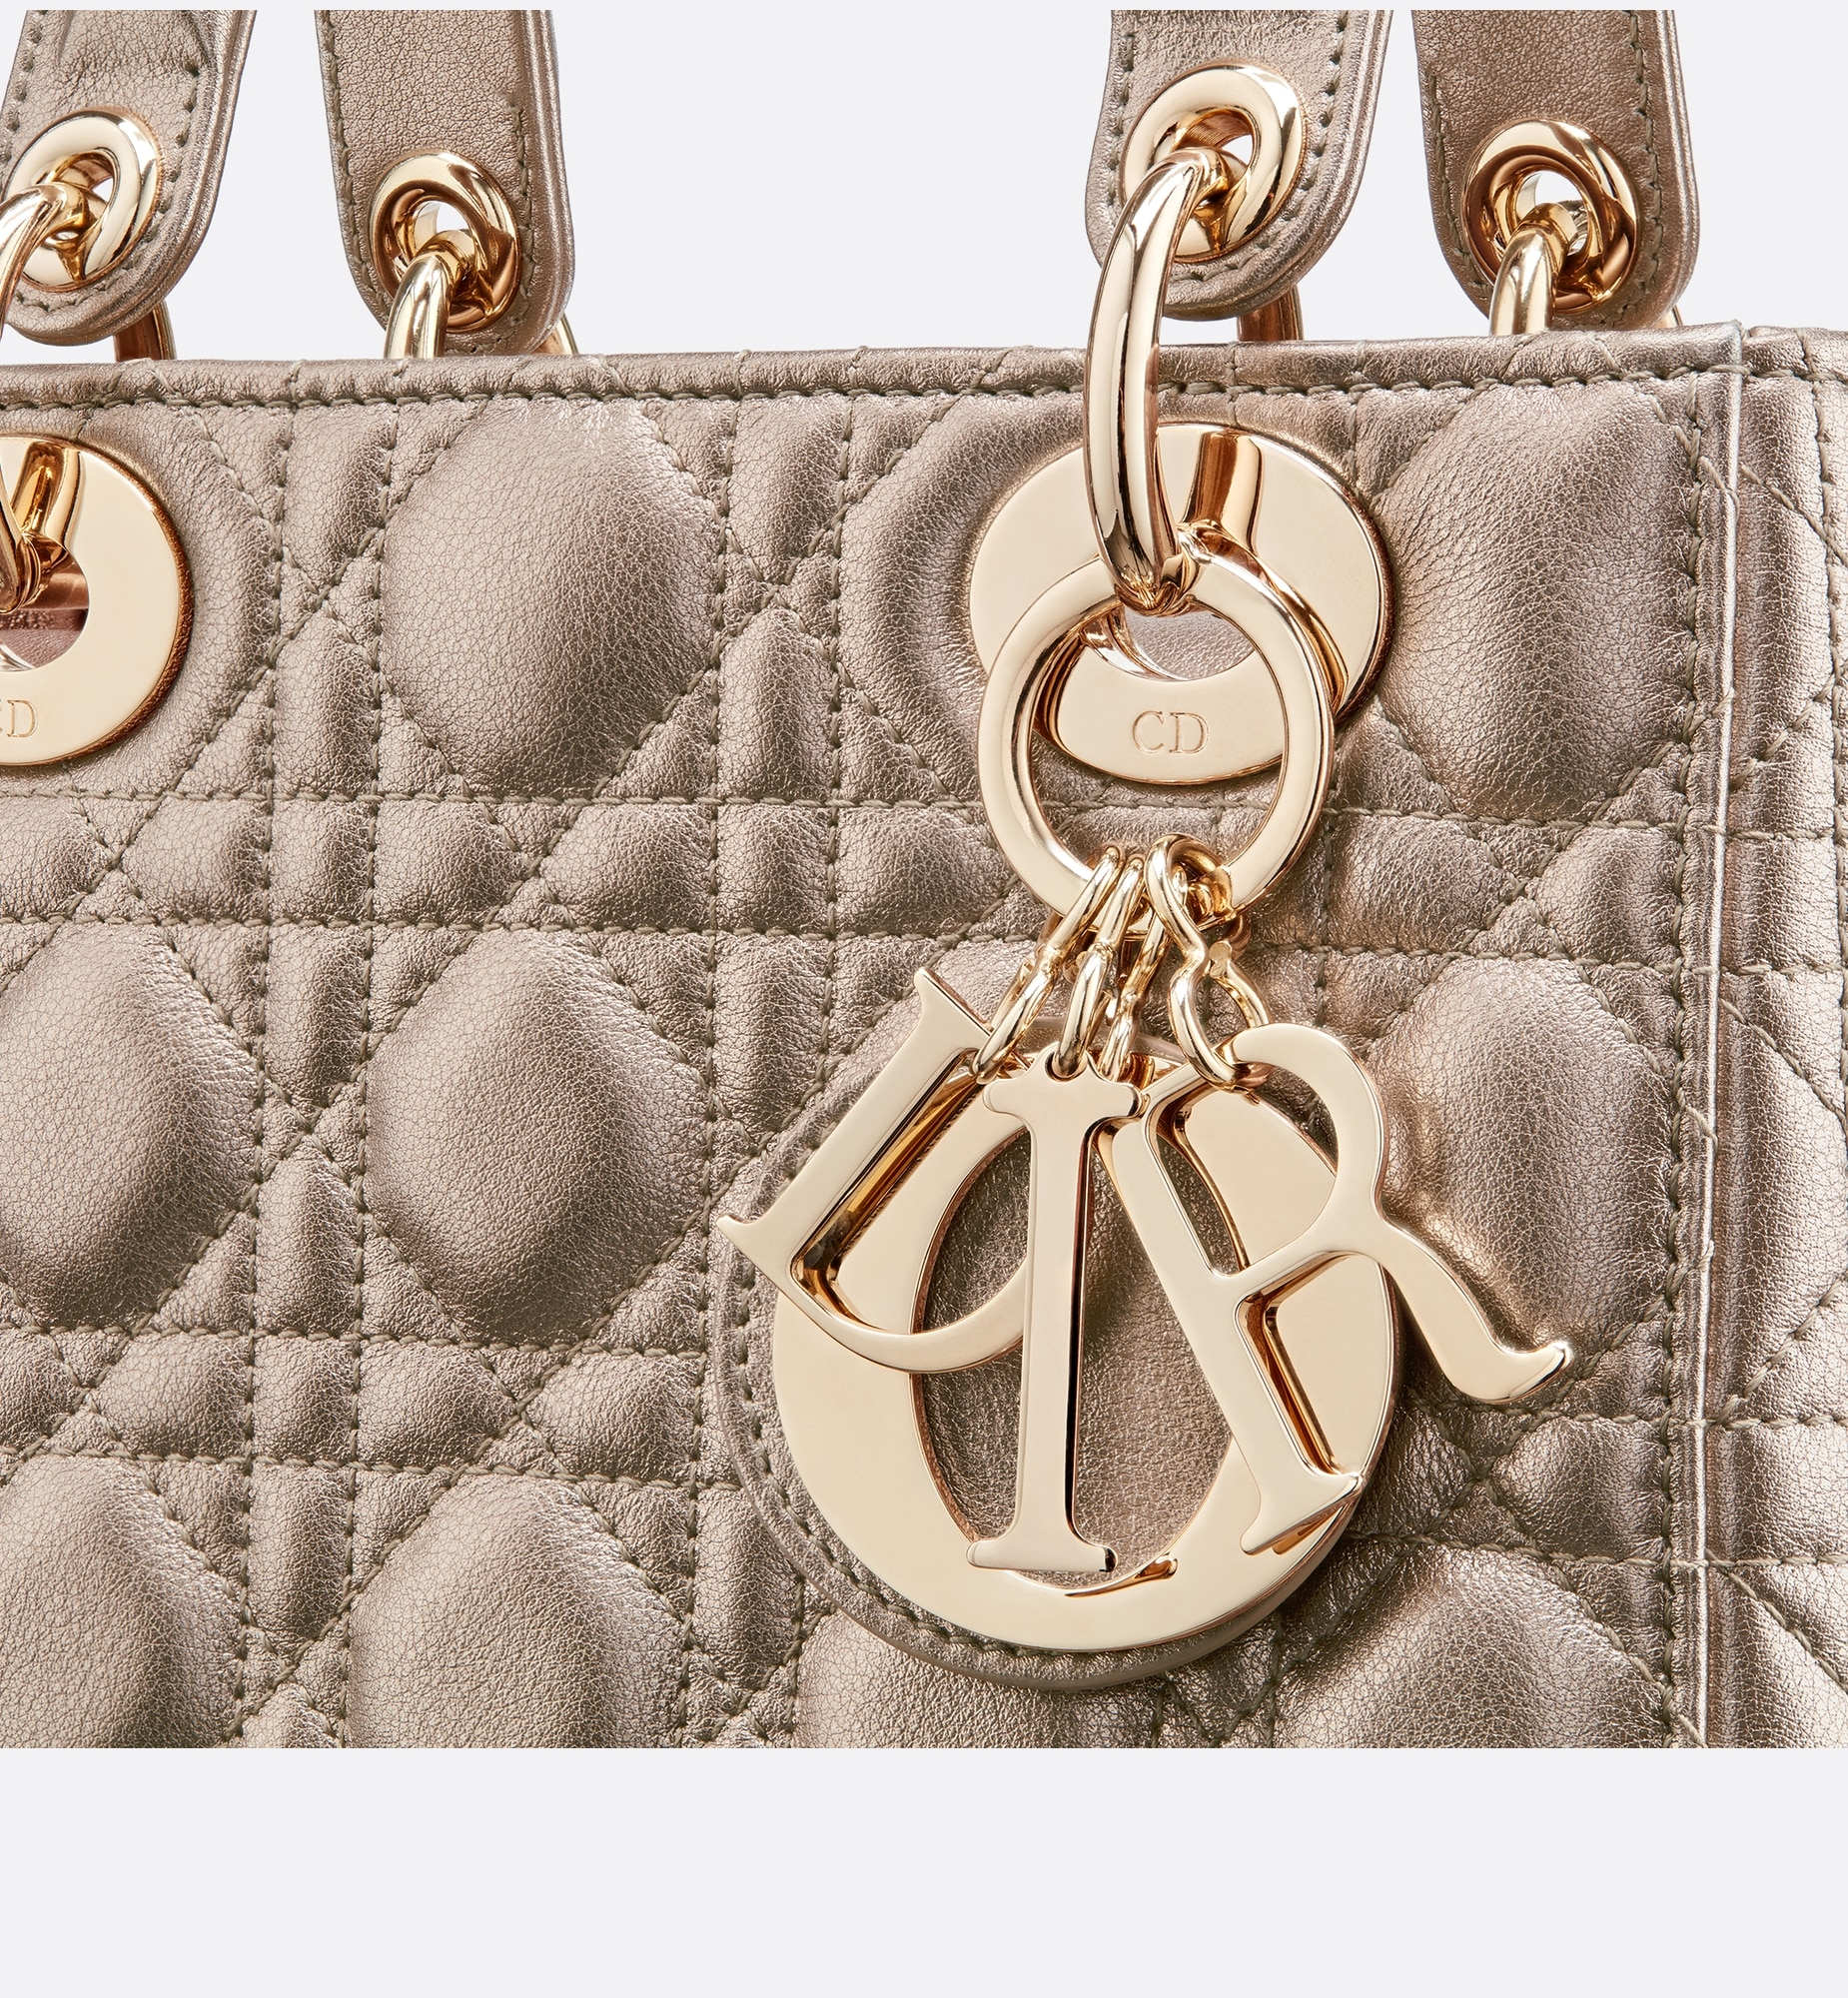 Lady Dior My ABCDior-tas aria_detailedView aria_openGallery